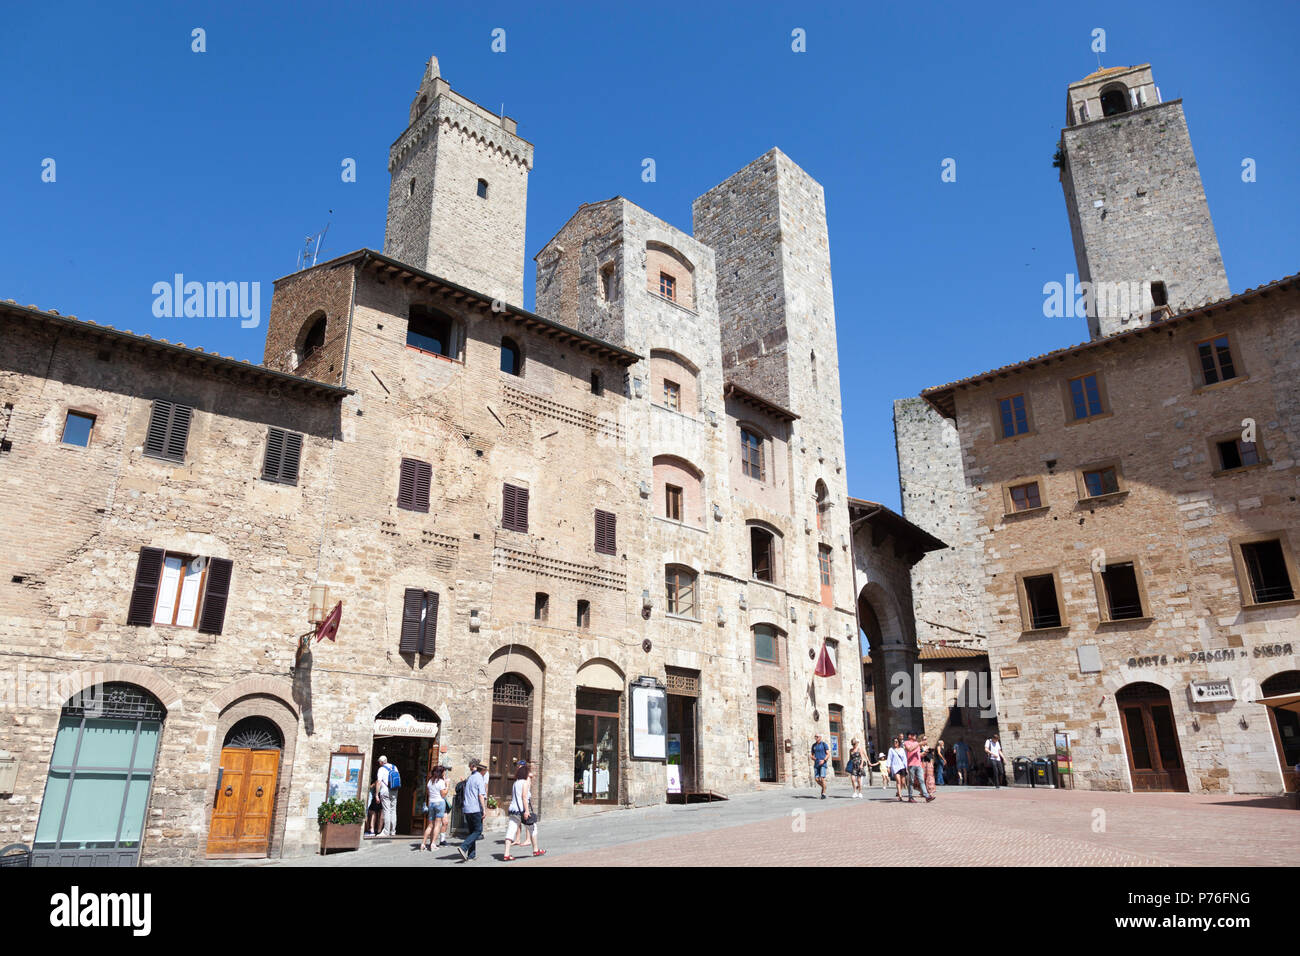 Gently sloping down, the cistern square of San Gimignano (Tuscany)  is encircled with austere residences dating back from century 13 th and 14 th. - Stock Image